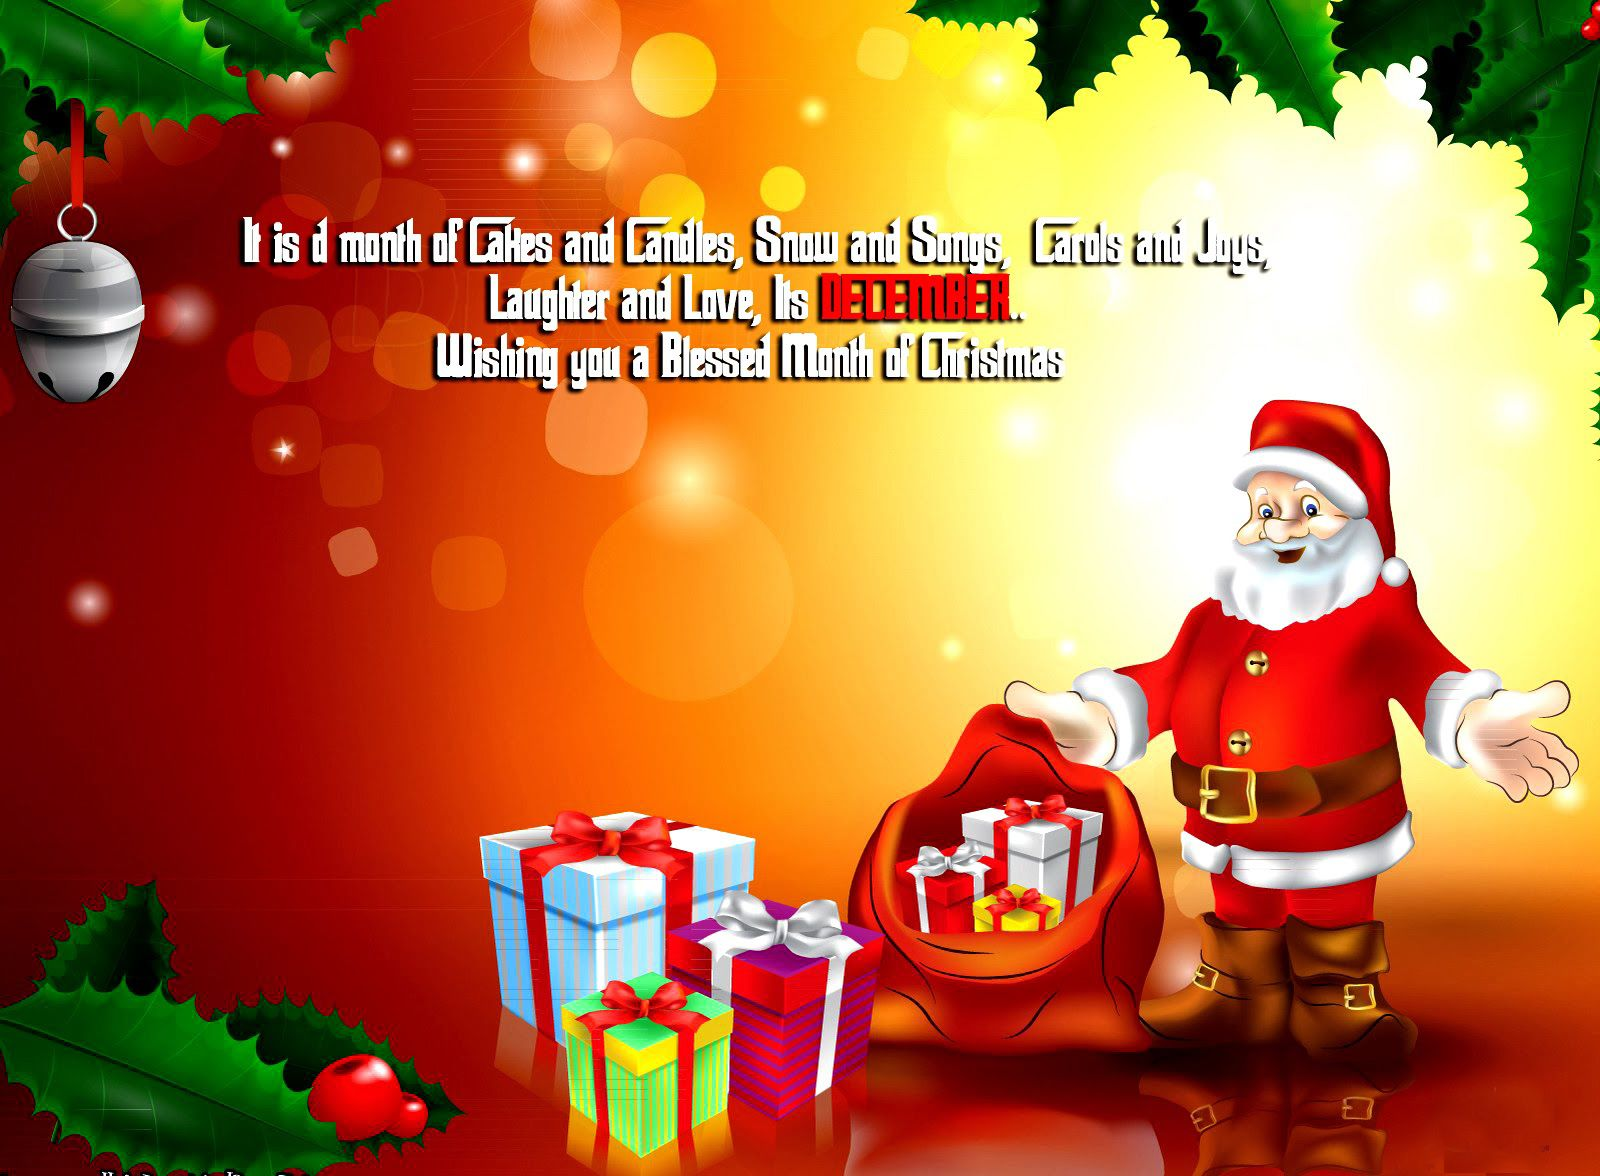 Perfect Merry Christmas Drawing Wallpaper Christmas Holidays Wallpapers In Nice Design